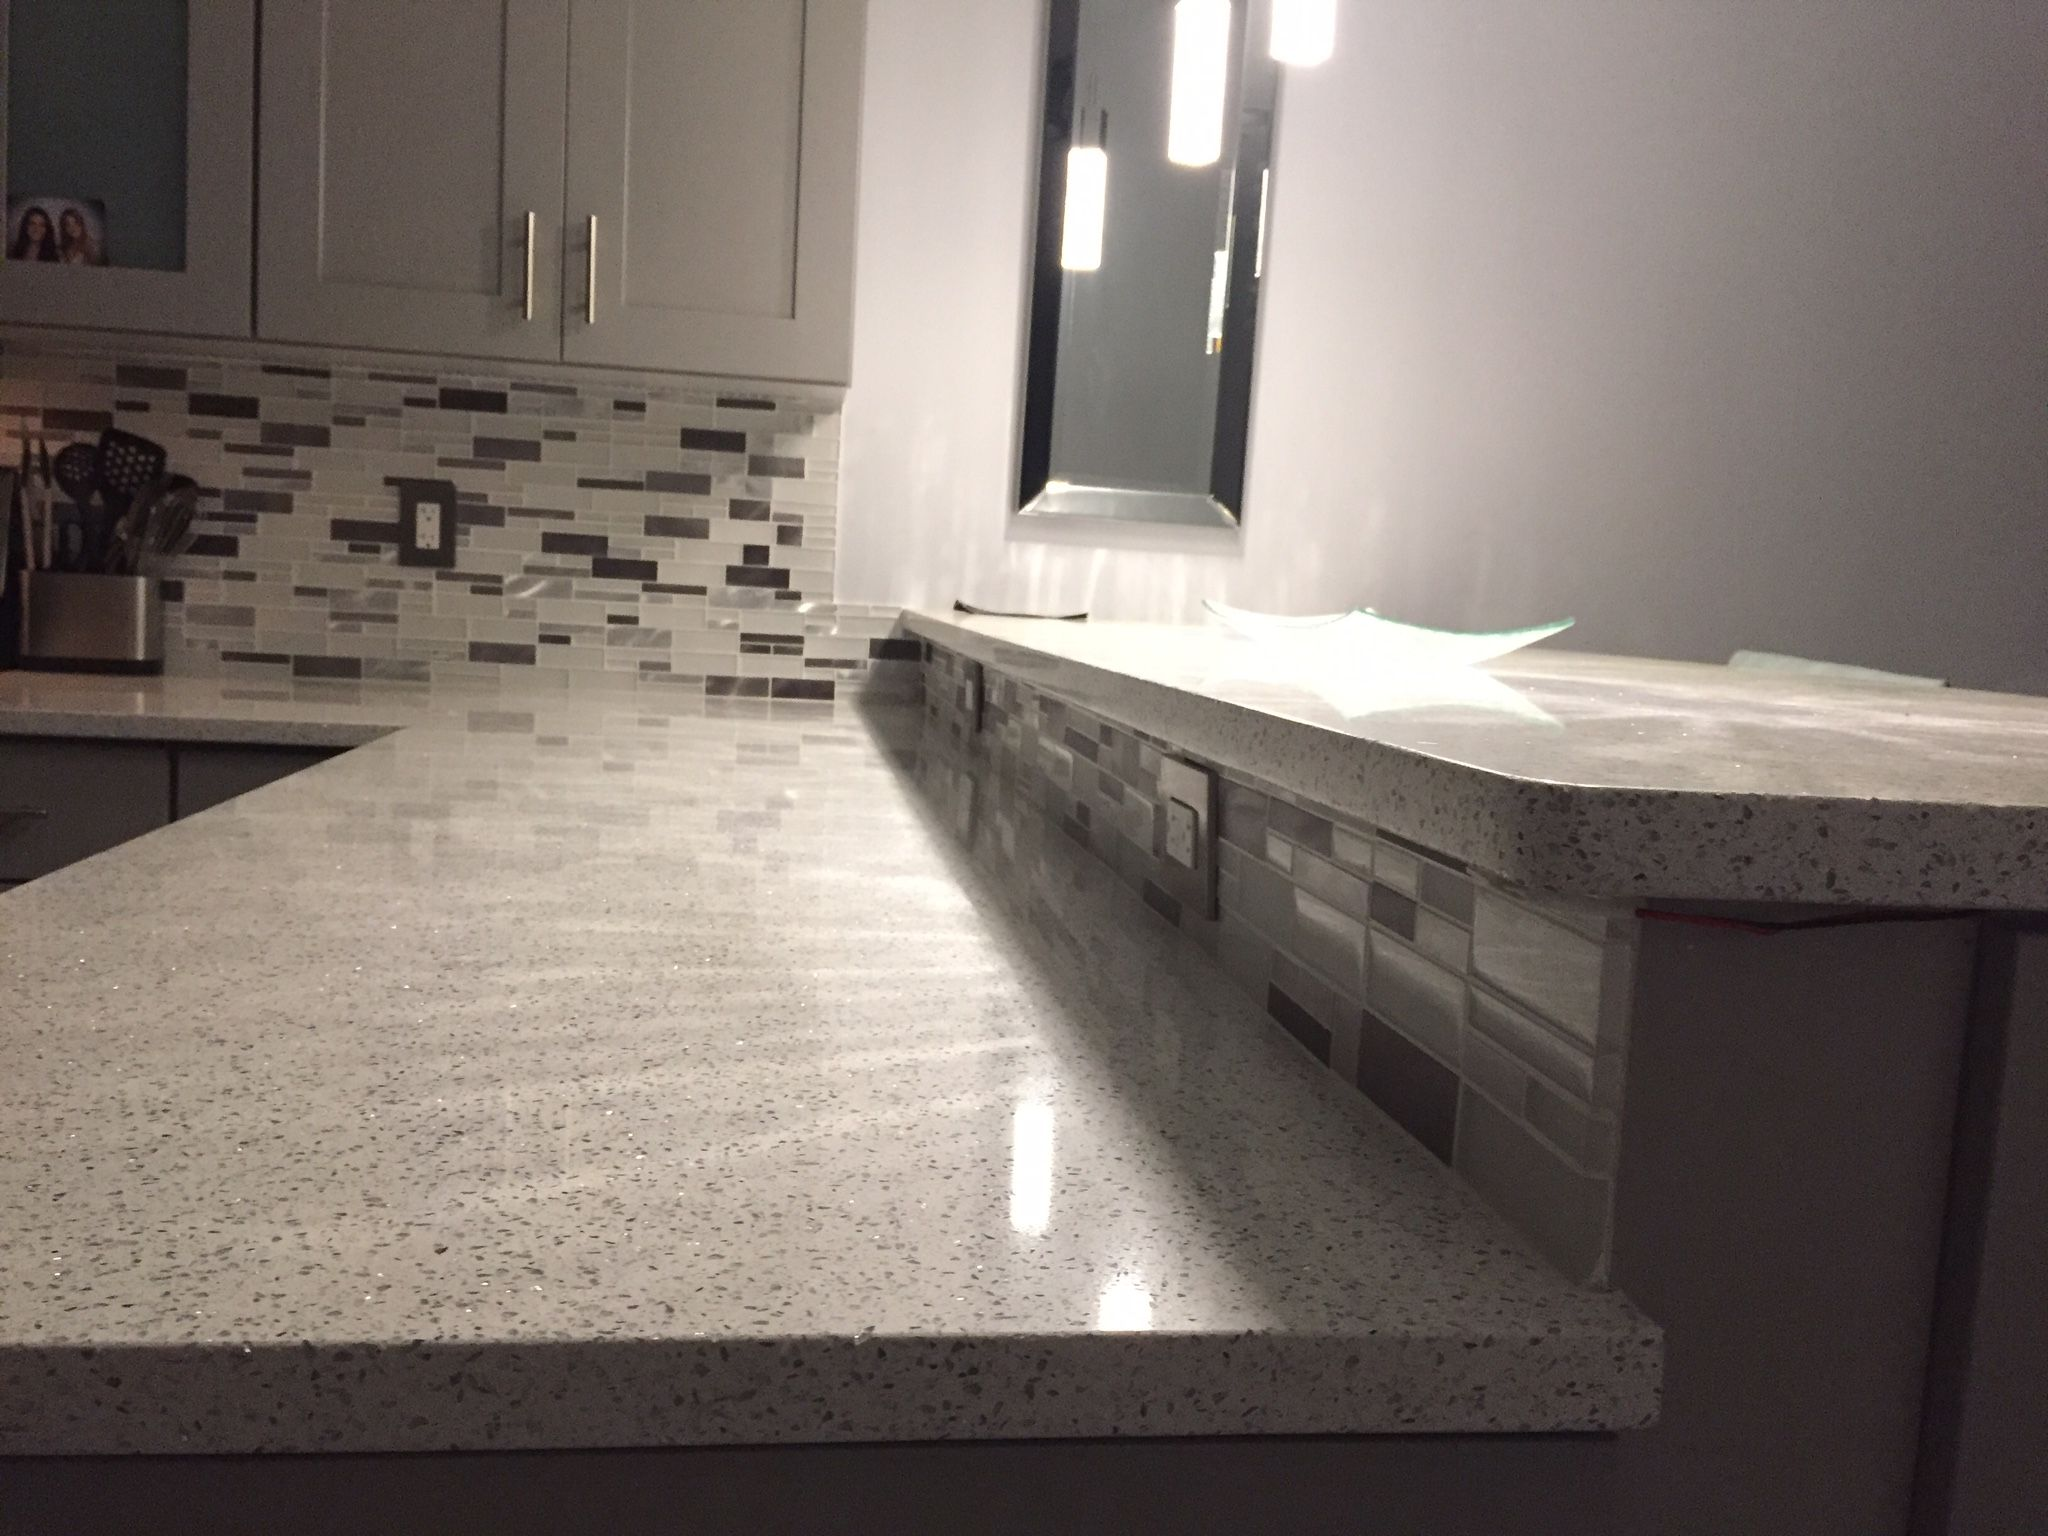 nect our was giani granite did stains great with kit and depot superficial we go shape not color put paint structurally home experience scratches the also countertops countertop but many had laminate floor in ken a